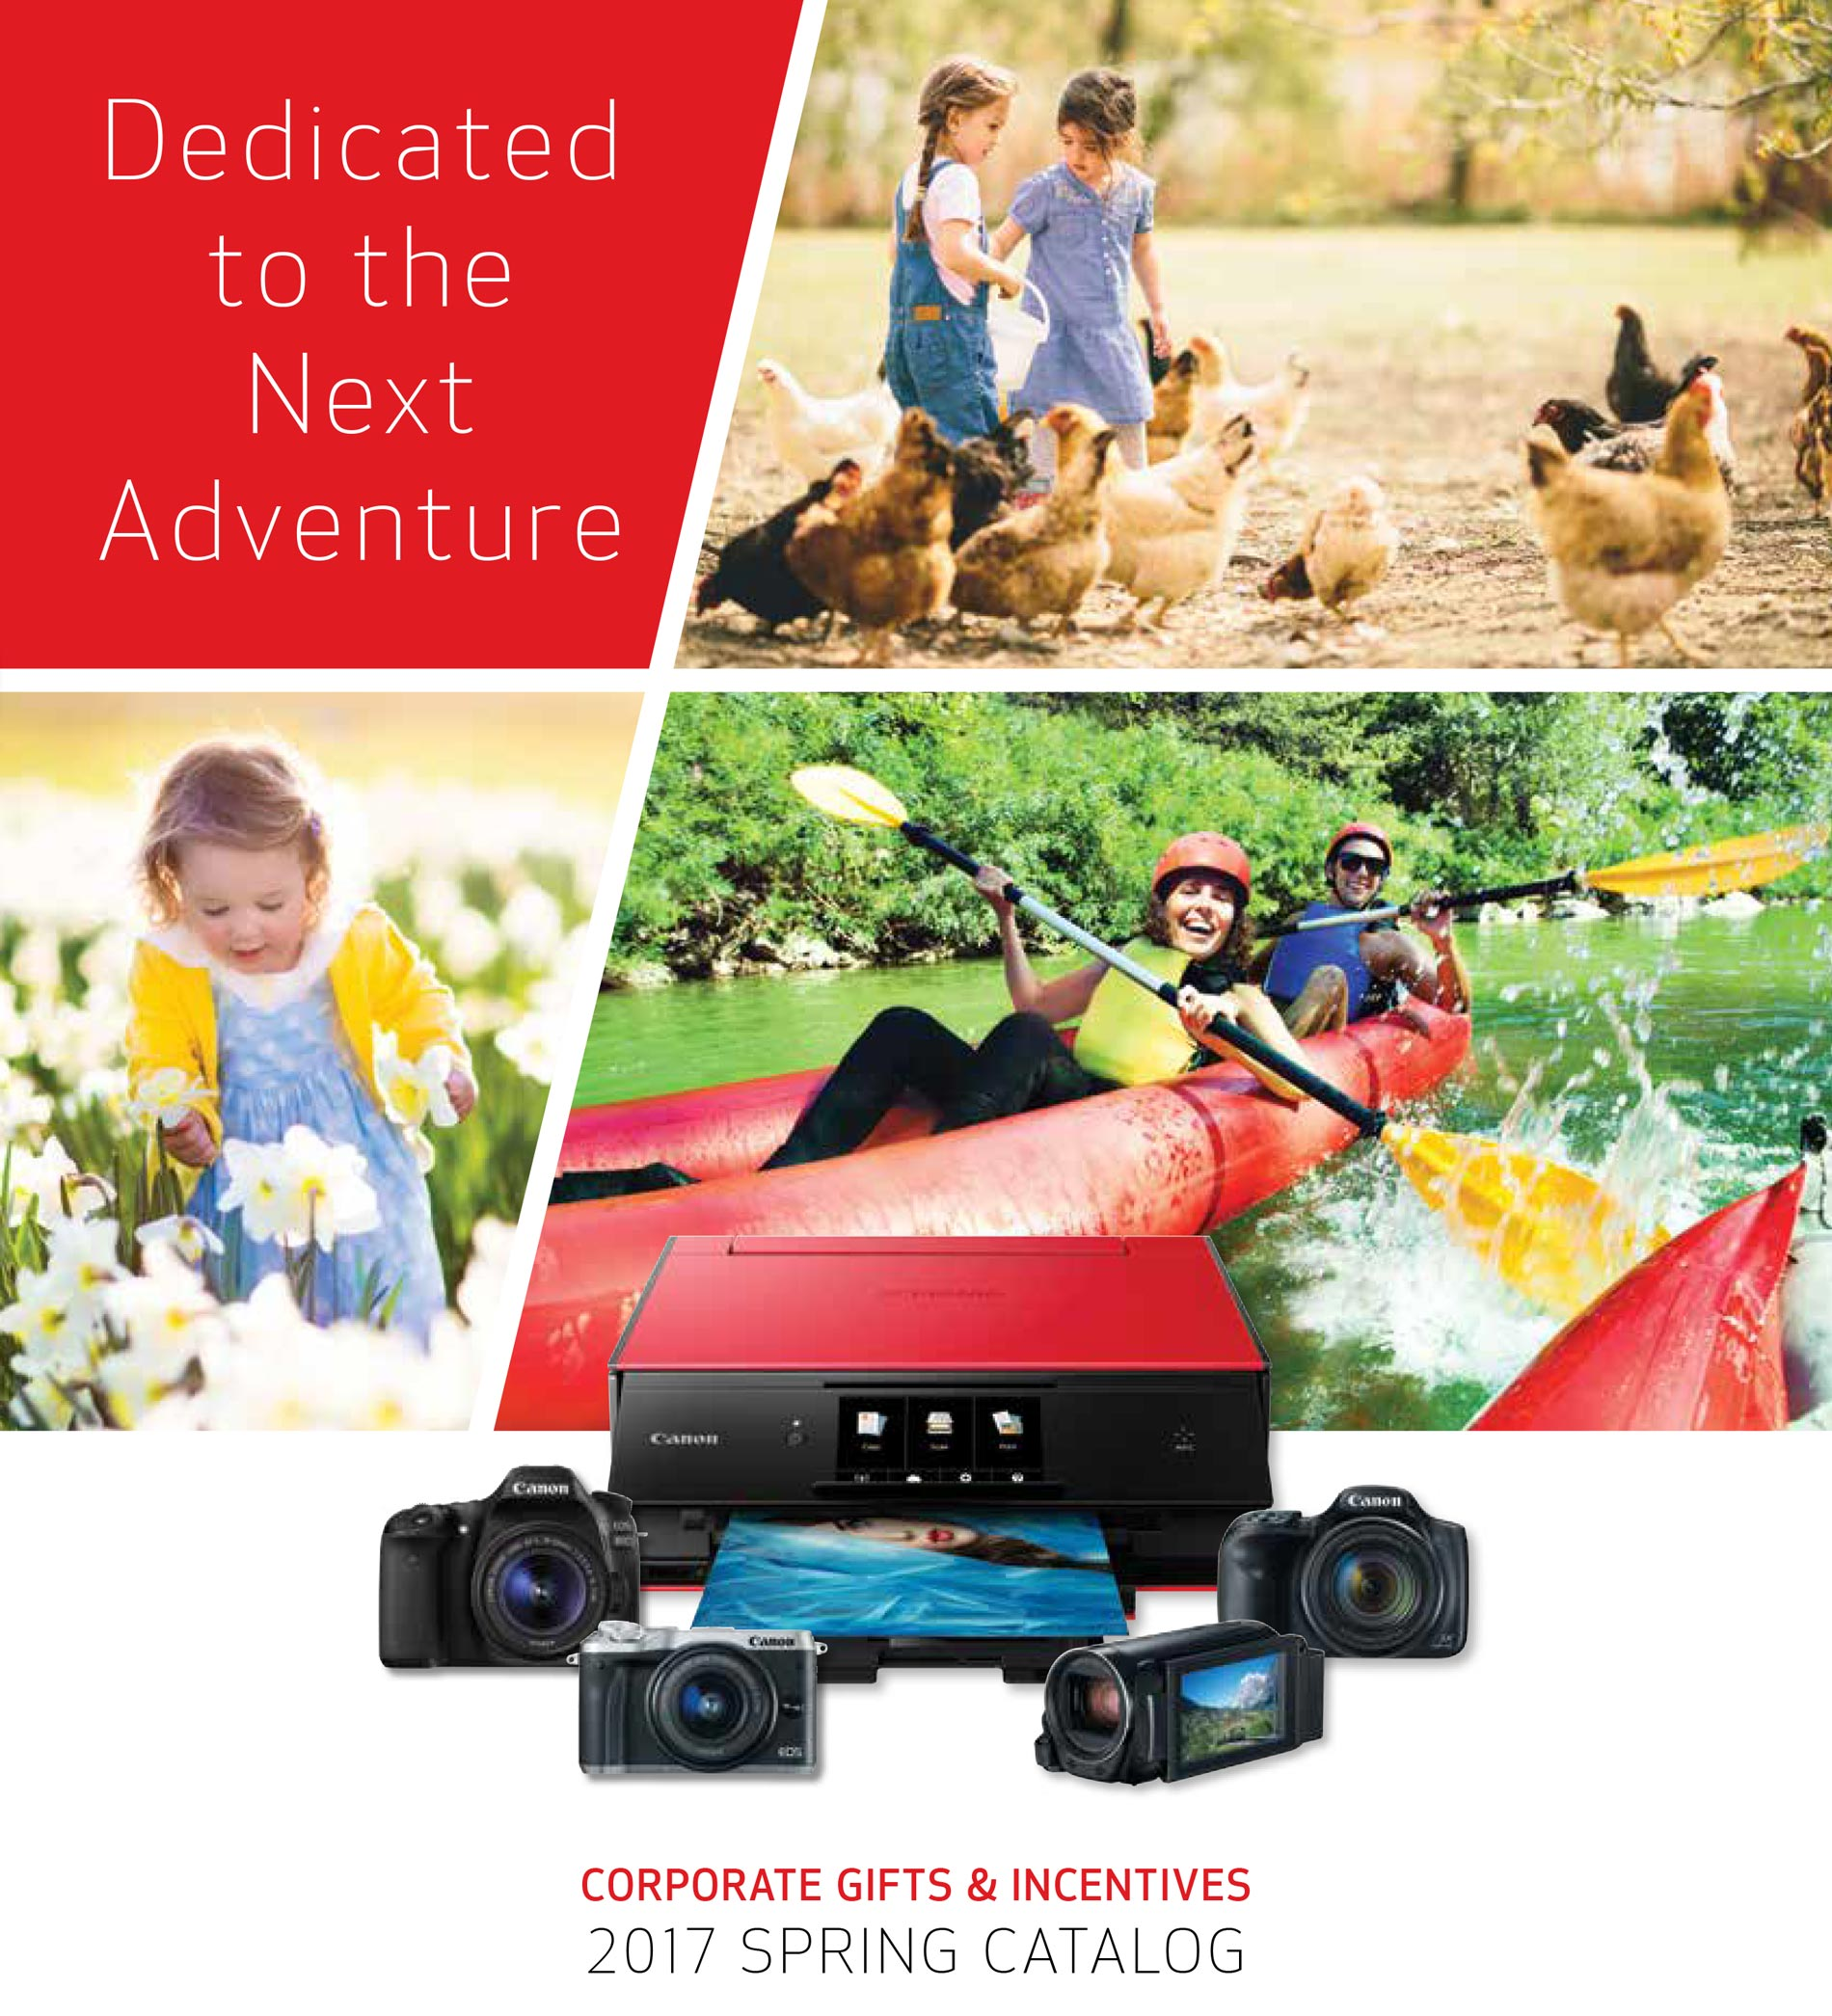 Canon Corporate Gifts & Incentives 2017 Spring Catalog Cover